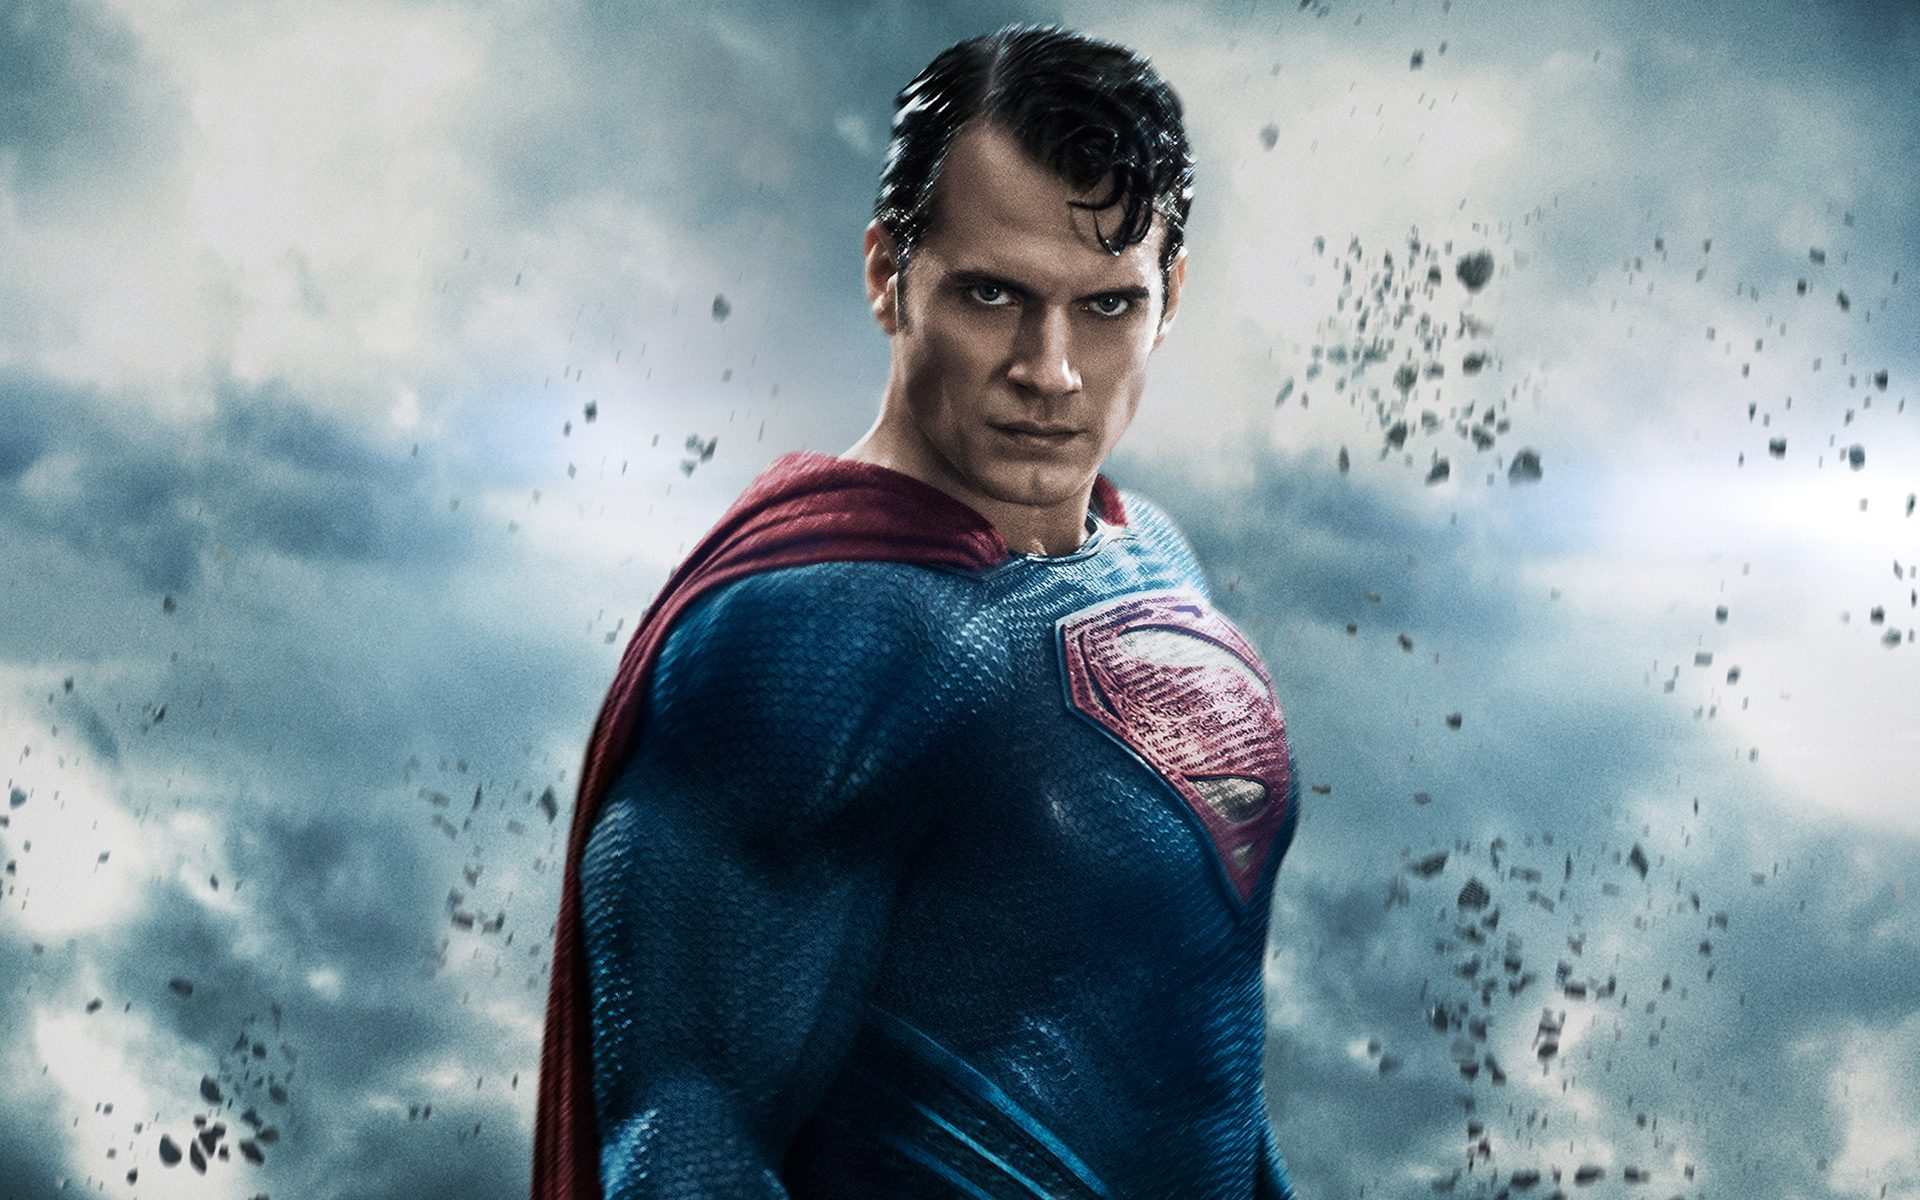 matthew-vaughn-man-of-steel-2